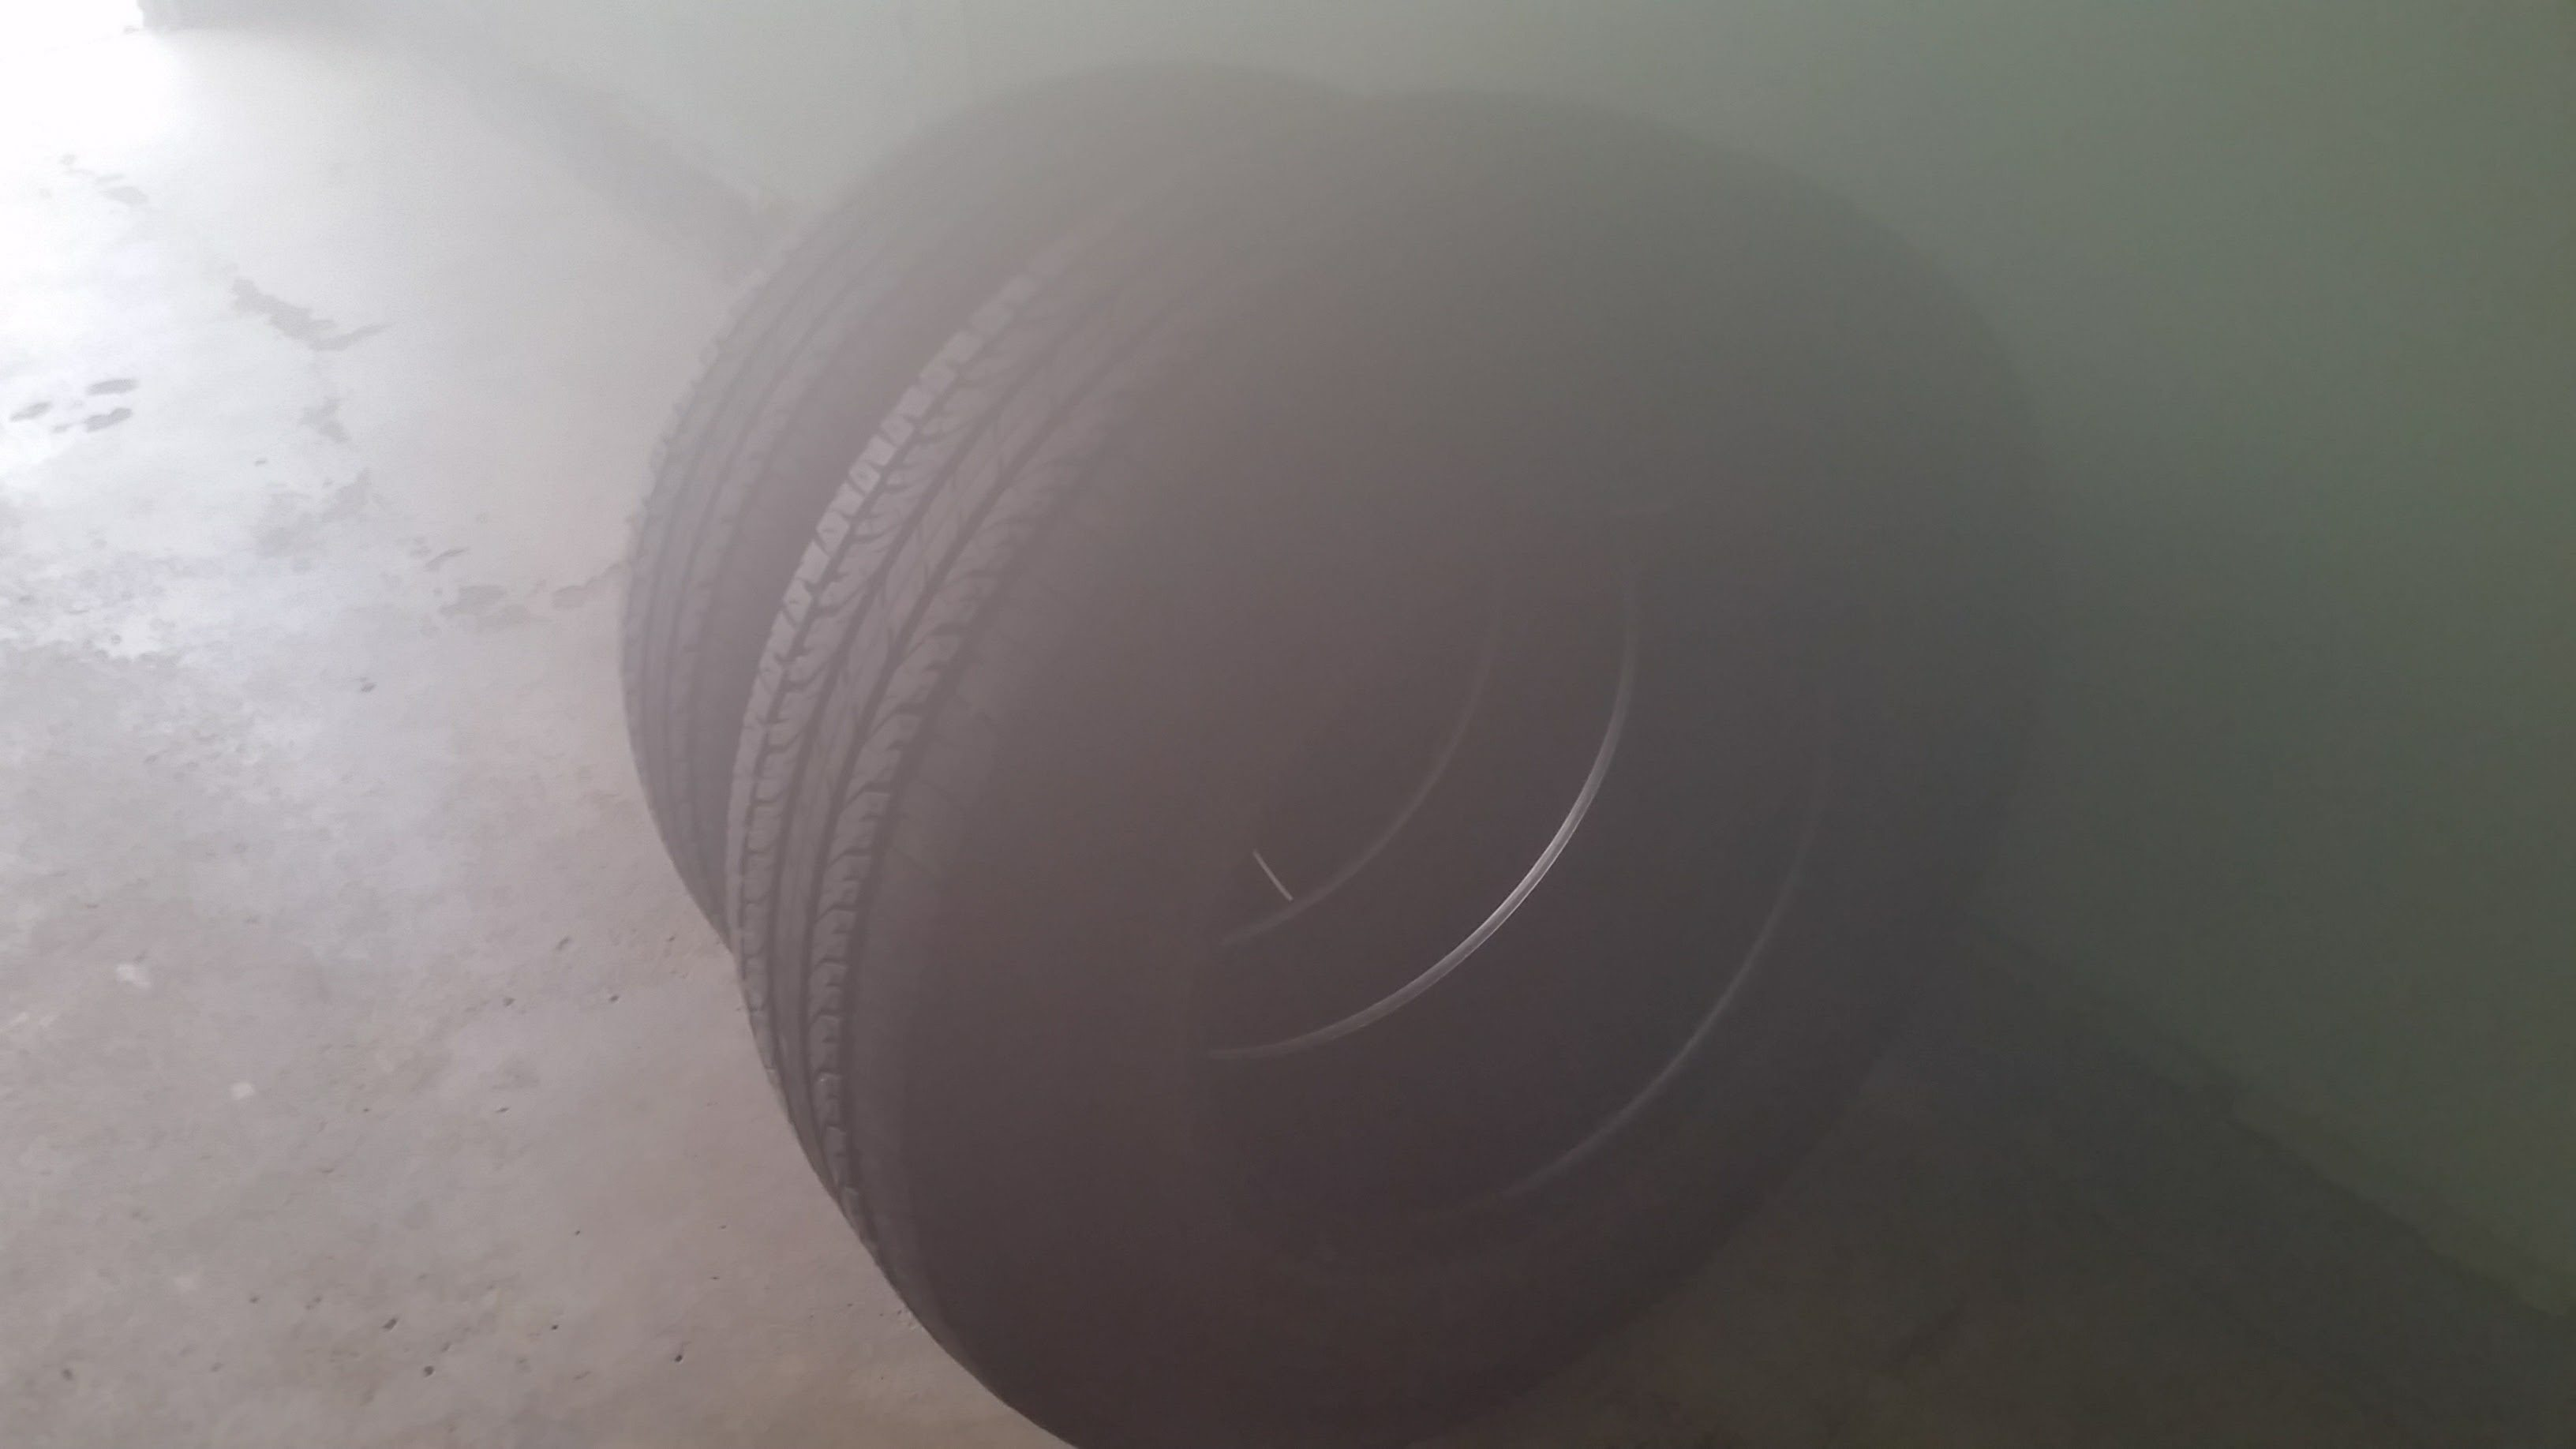 essays tires The four tires on the author's car are inflated to an absolute pressure of 28 10 5 pa if the car has a mass of 1,650 kg, what is the contact area between each tire and the ground cm 2.